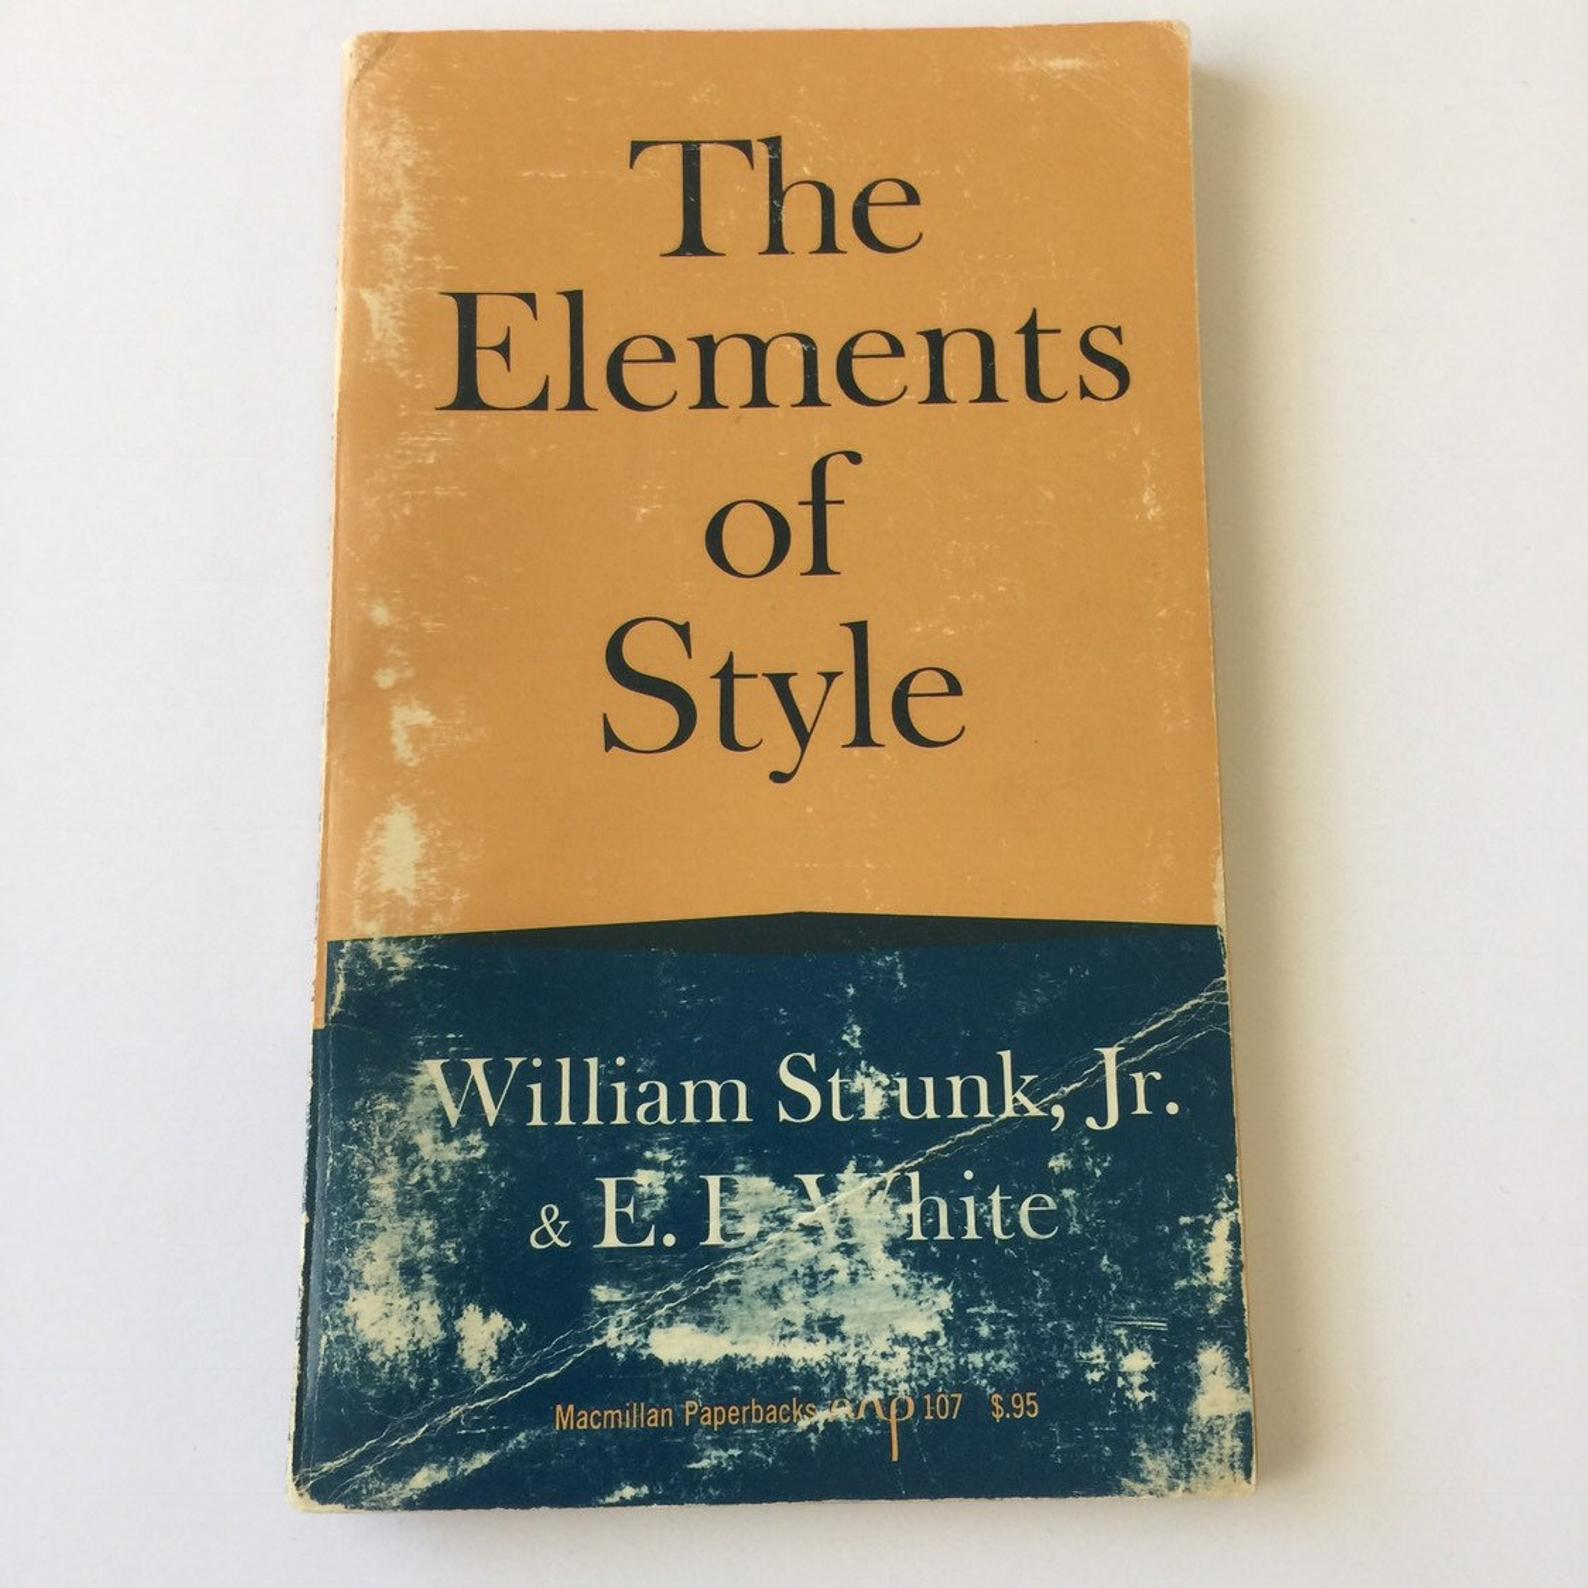 Writers and journalists have Elements of Style